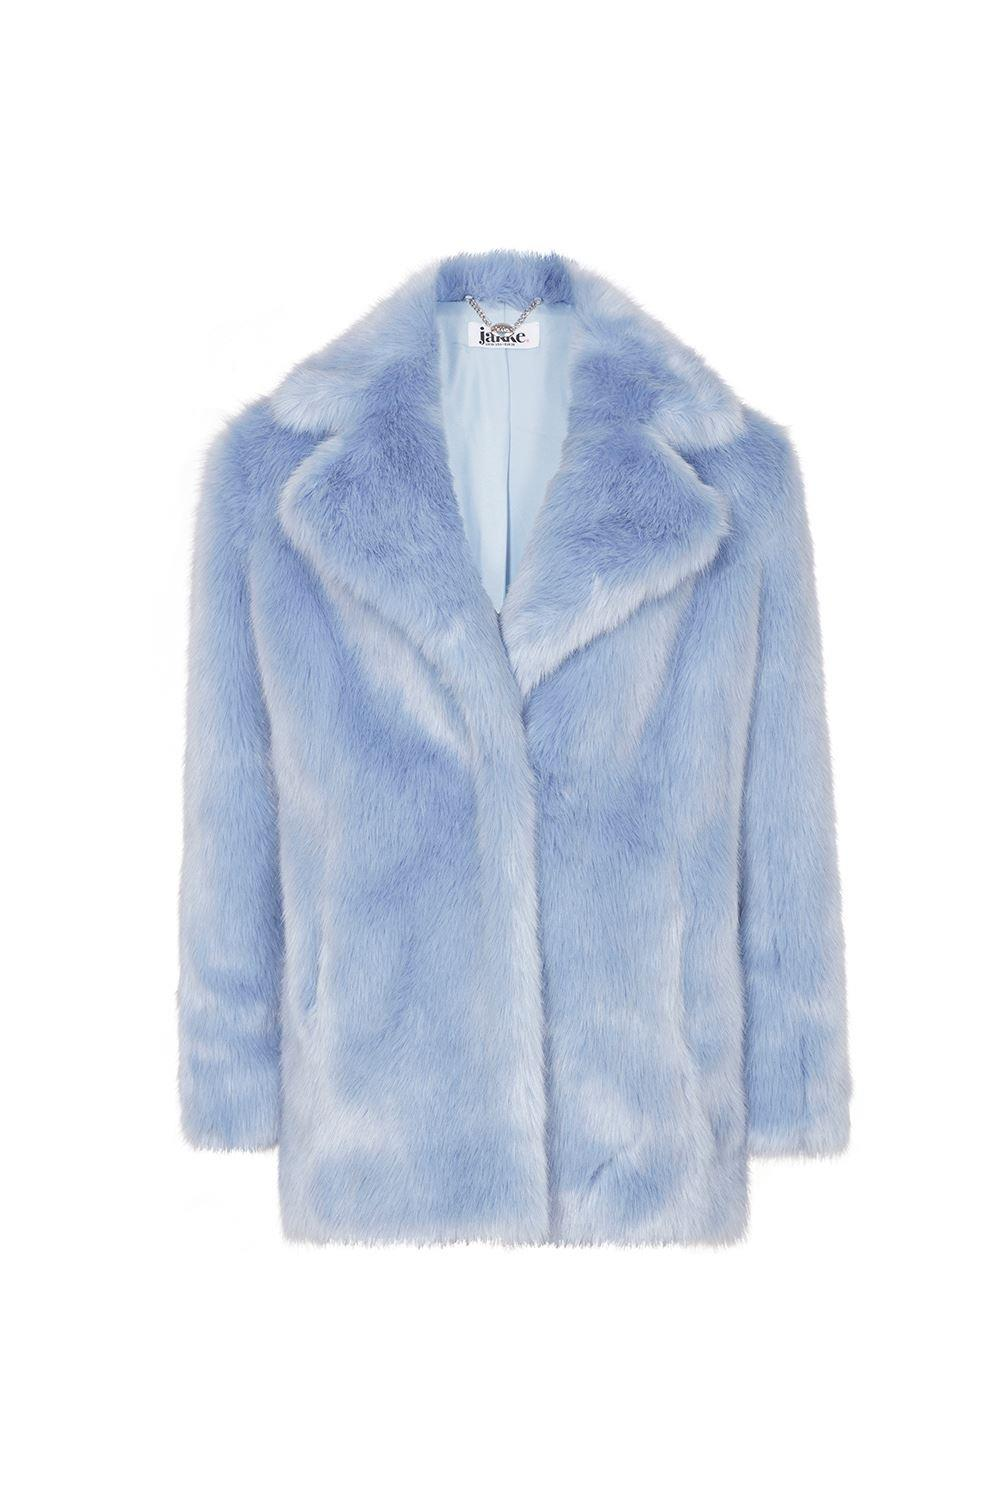 Heather Denim Luxe Faux Mongolian Faux Fur Coat